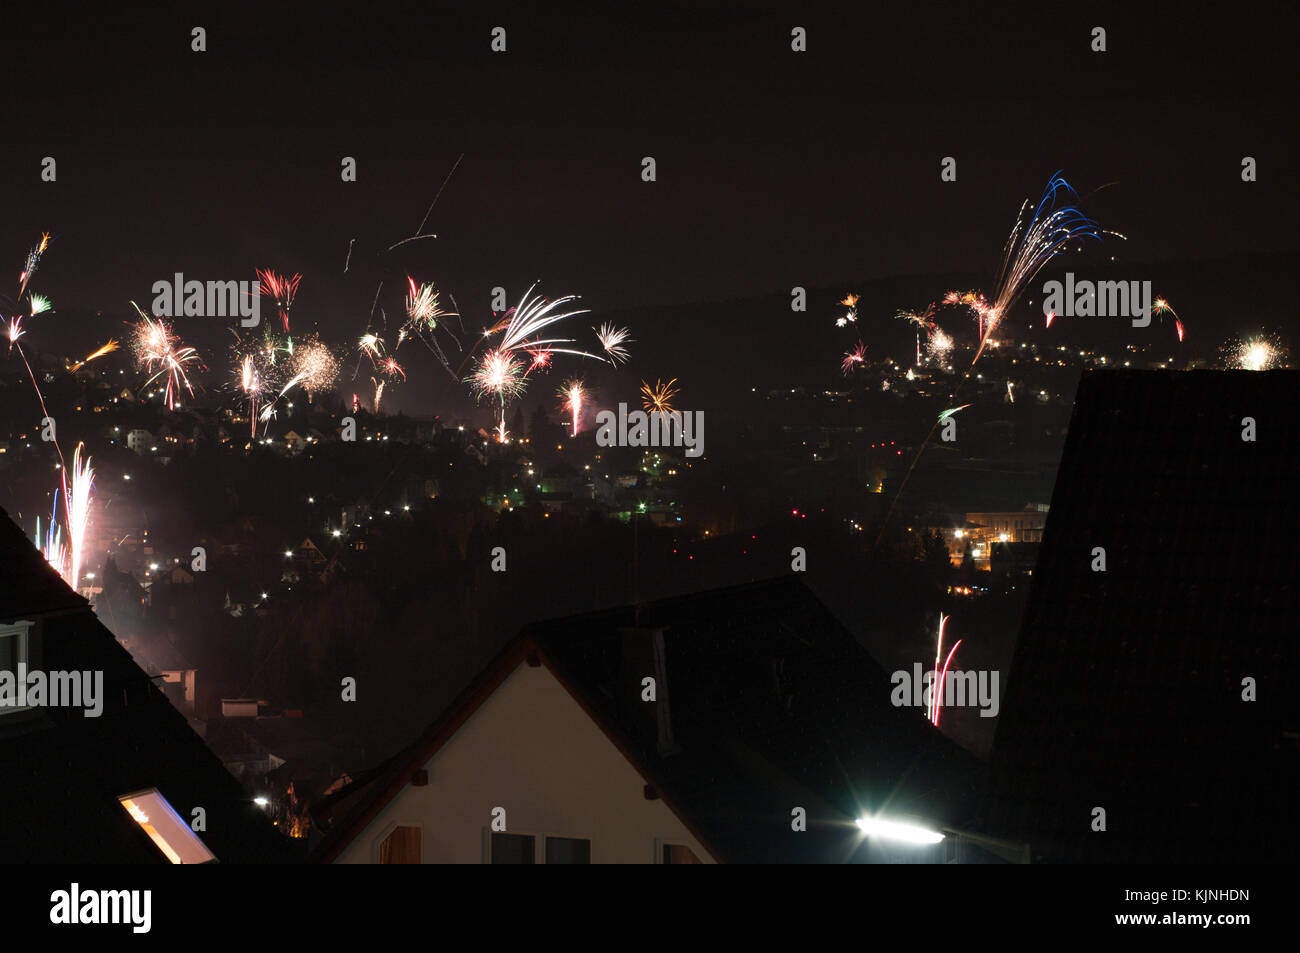 Fire Works at Silvester in Germany - Stock Image